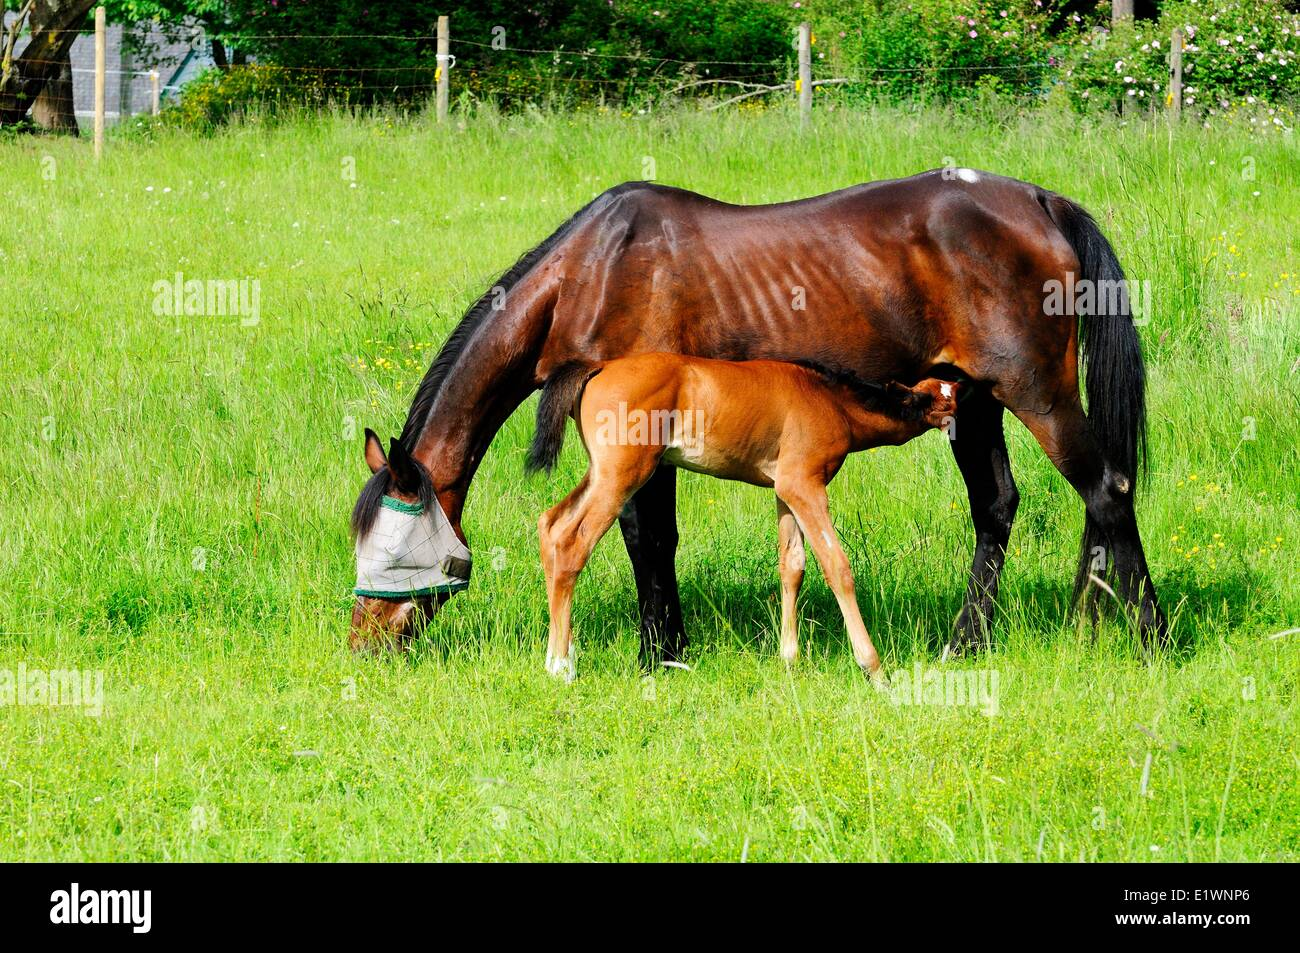 A two week old foal nurses her mother  The foal is 1/2